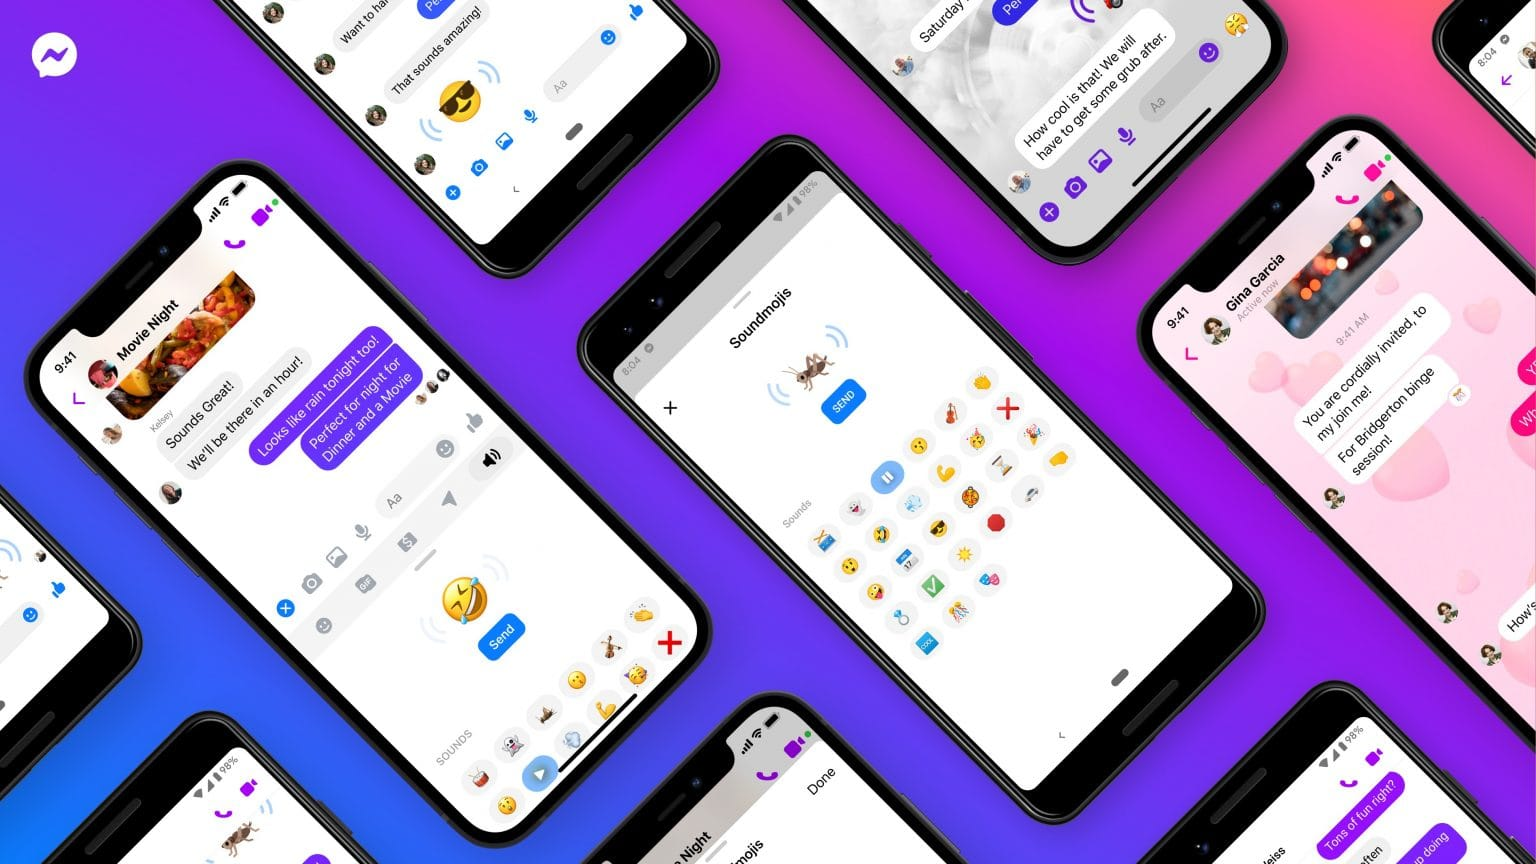 Amp up your emoji game with Soundmojis in Facebook Messenger.